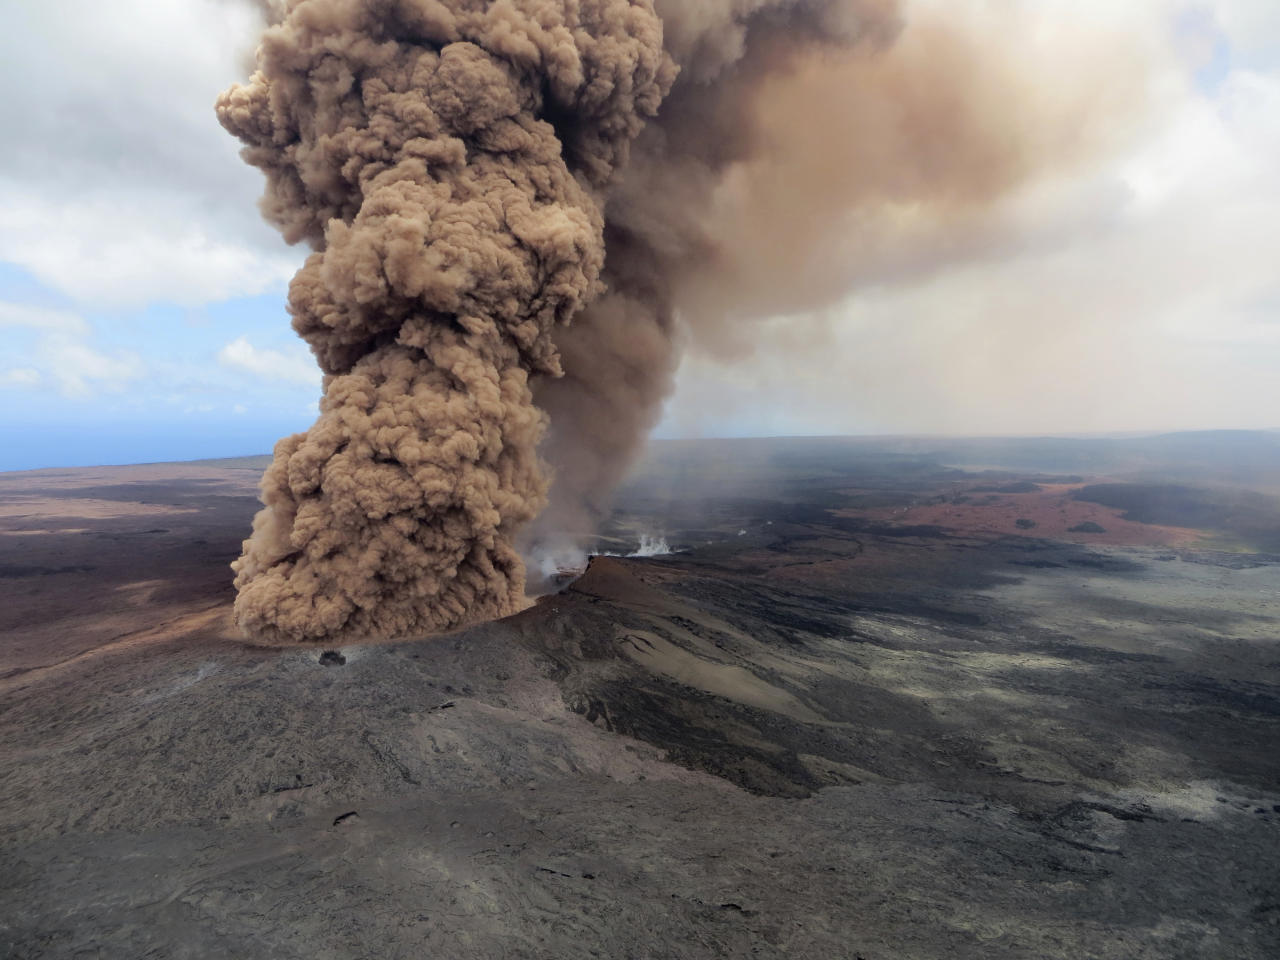 <p>A column of robust, reddish-brown ash plume occurred after a magnitude 6.9 South Flank of KÄ«lauea earthquake shook the Big Island of Hawaii, May 4, 2018. (Photo: U.S. Geological Survey via AP) </p>